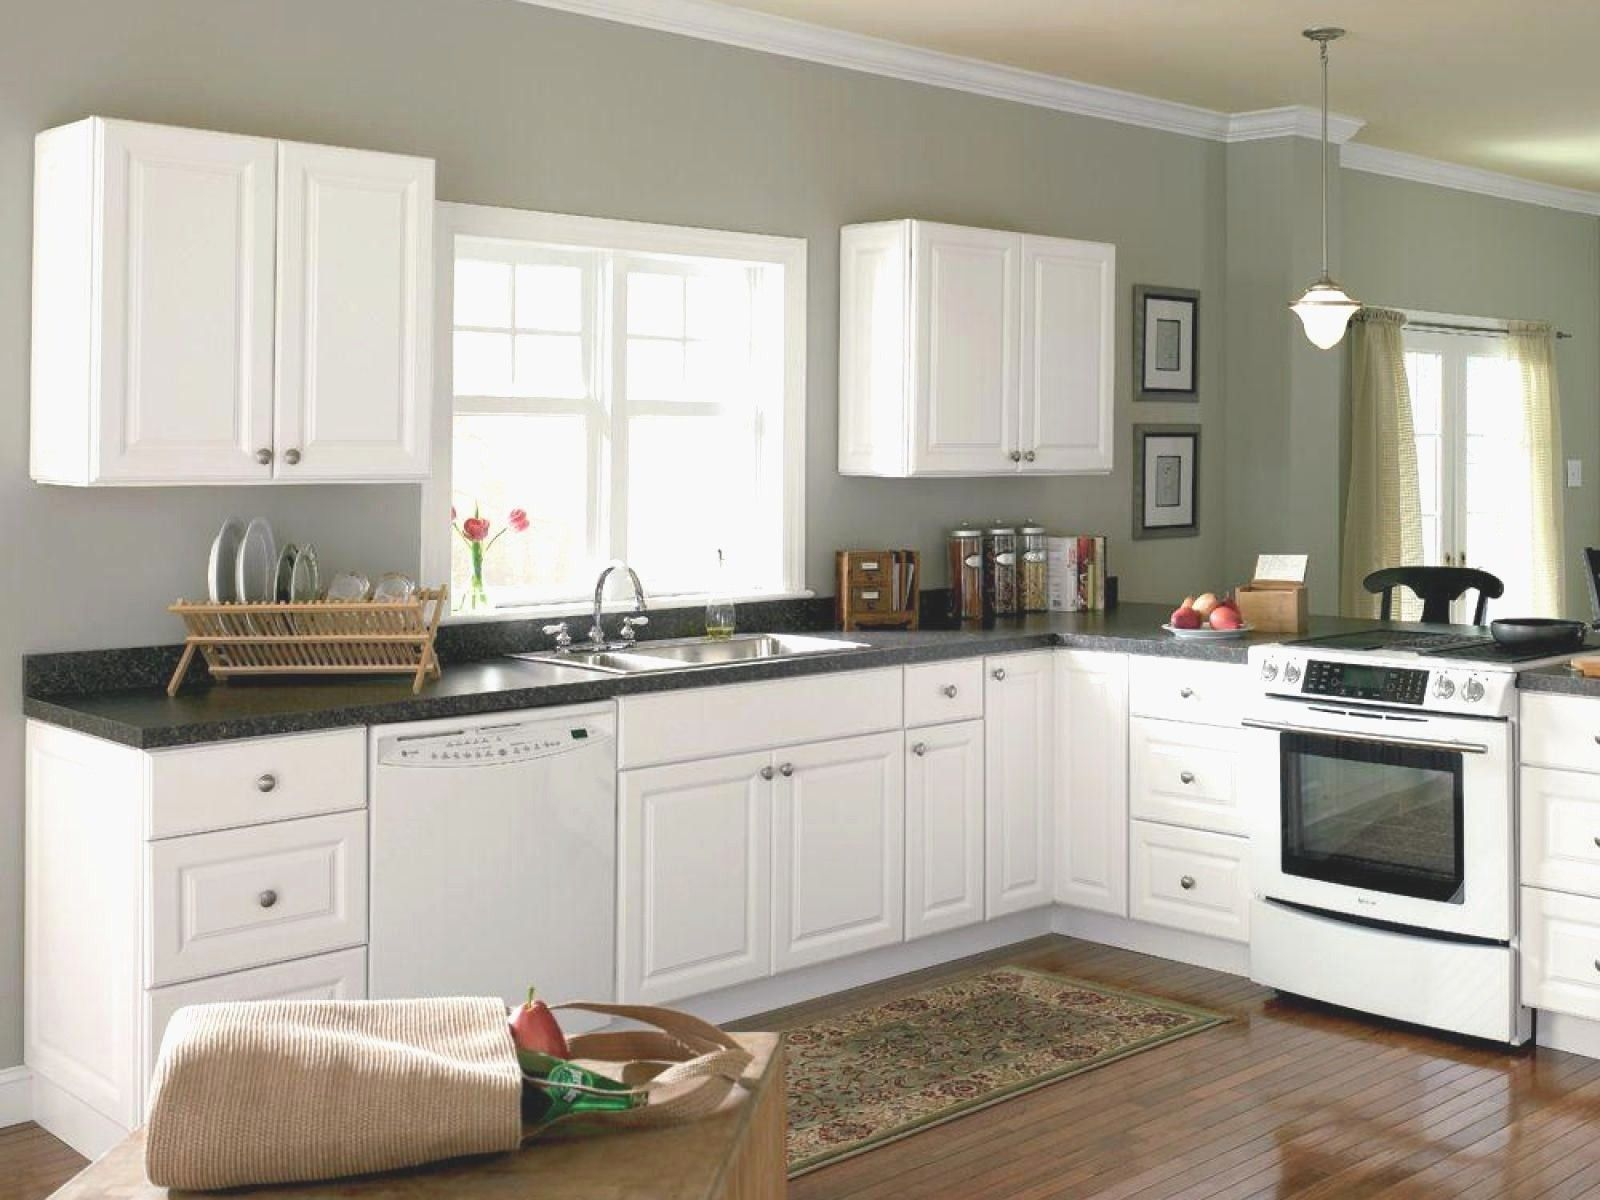 Inspirational Home Depot Kitchen Cabinets Antique White The Brilliant And Lovely Home Depot Kitchen Cabinets Antique White For Encoura White Kitchen Appliances Modern Kitchen Design